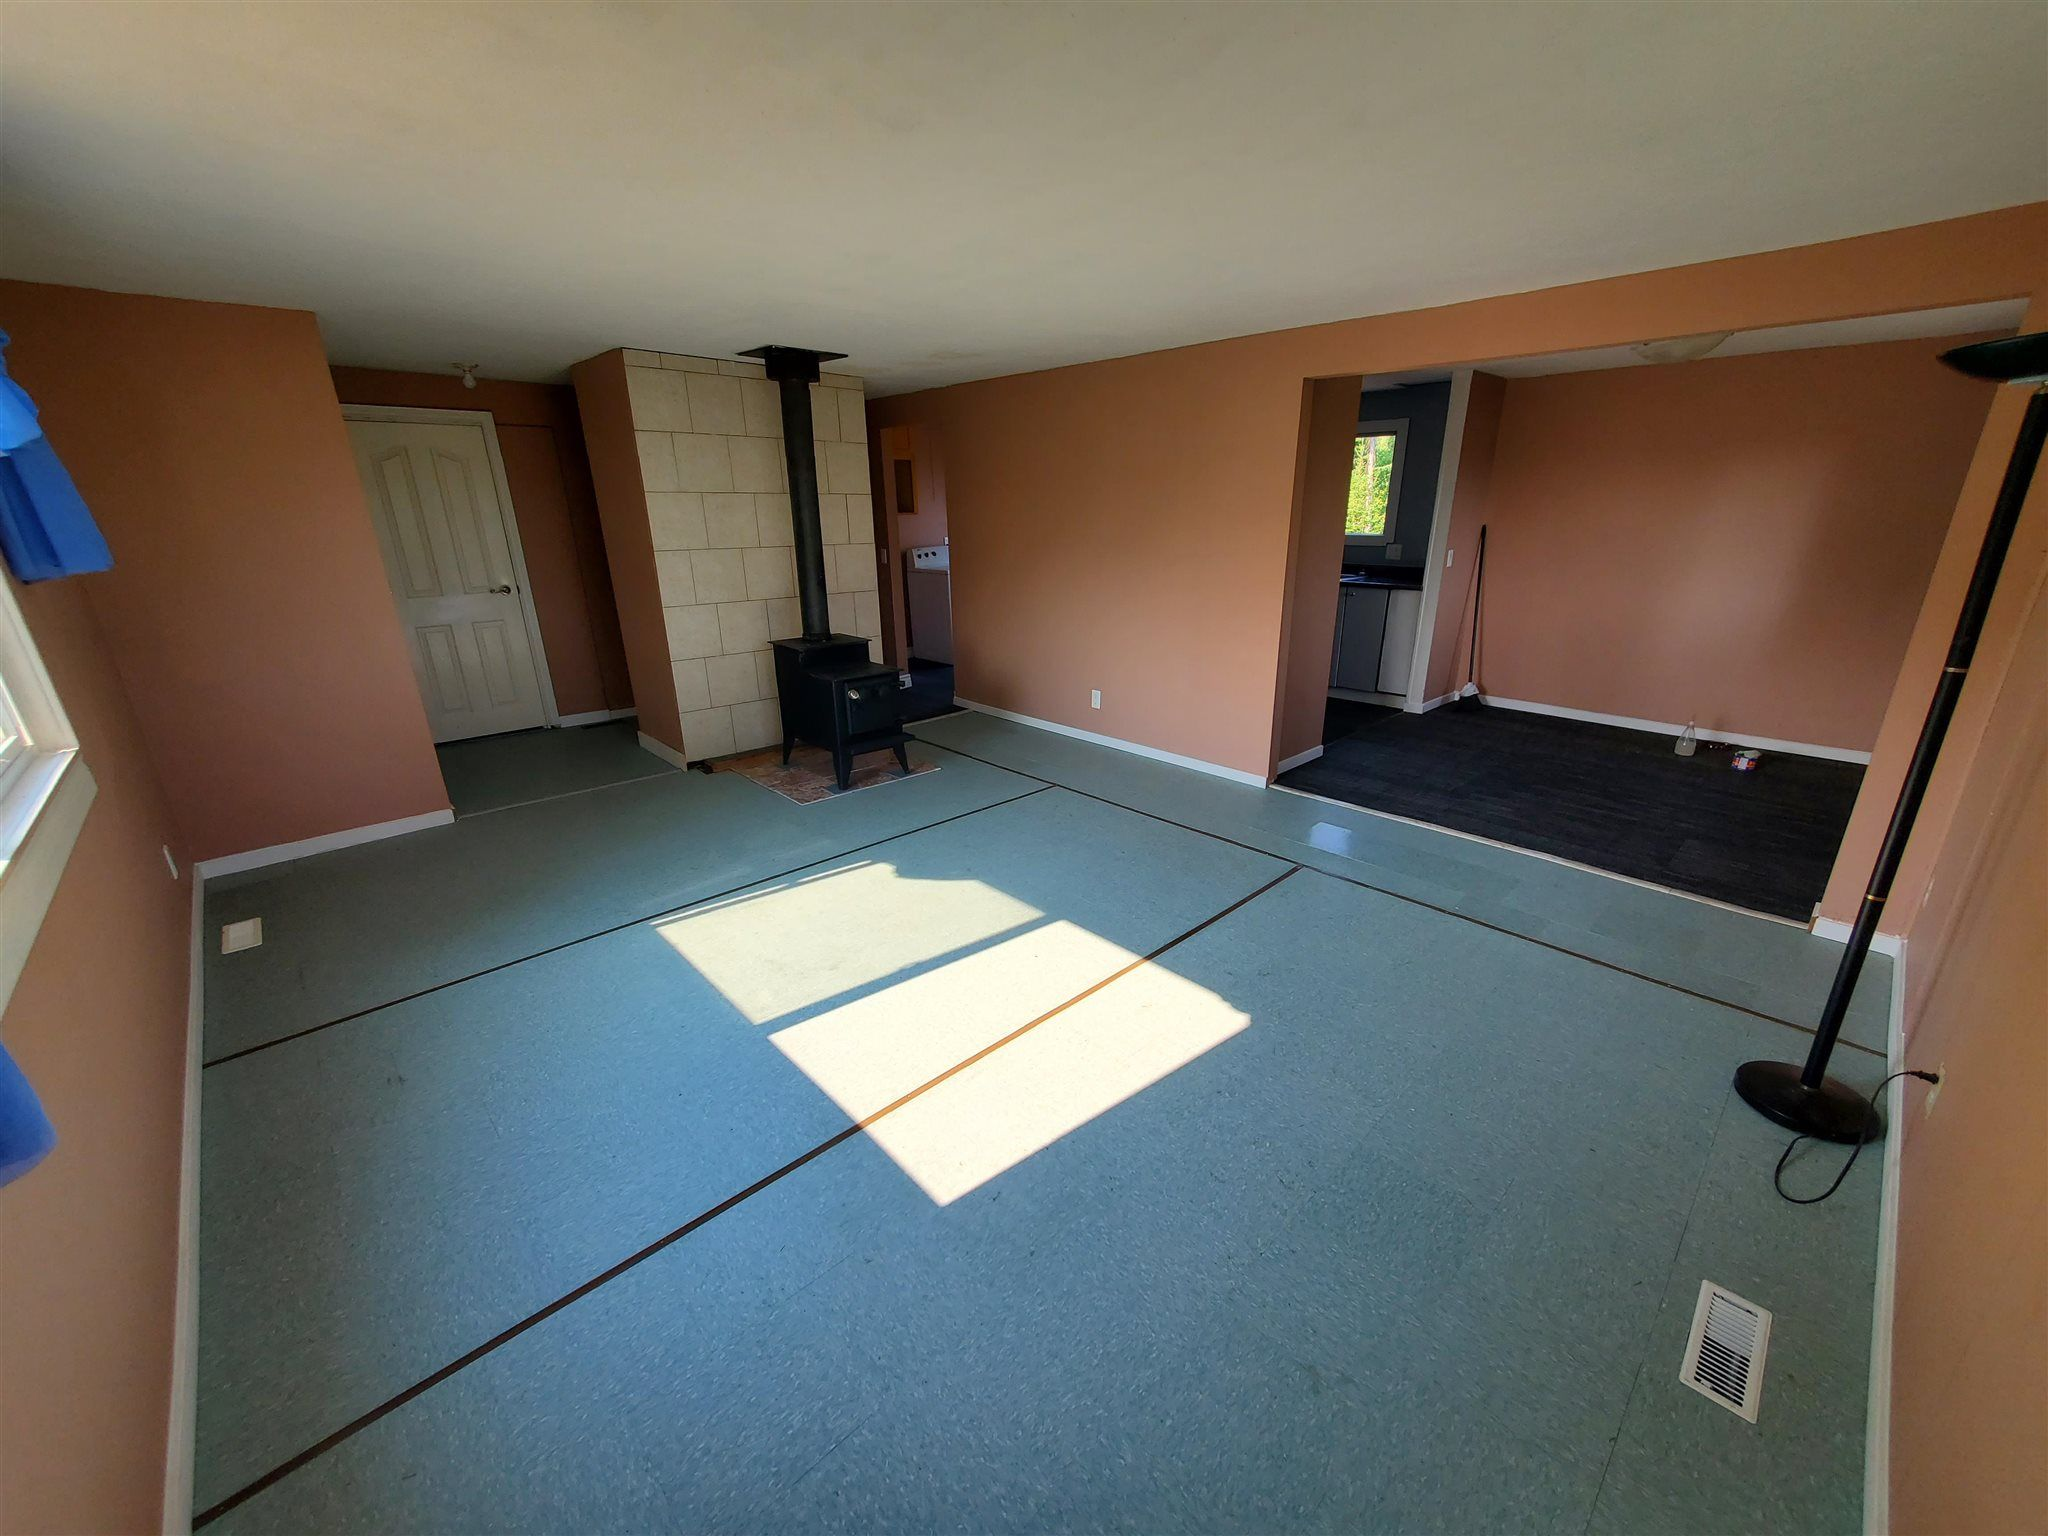 Photo 5: Photos: 2507 NORWOOD Road in Quesnel: Bouchie Lake Manufactured Home for sale (Quesnel (Zone 28))  : MLS®# R2606130